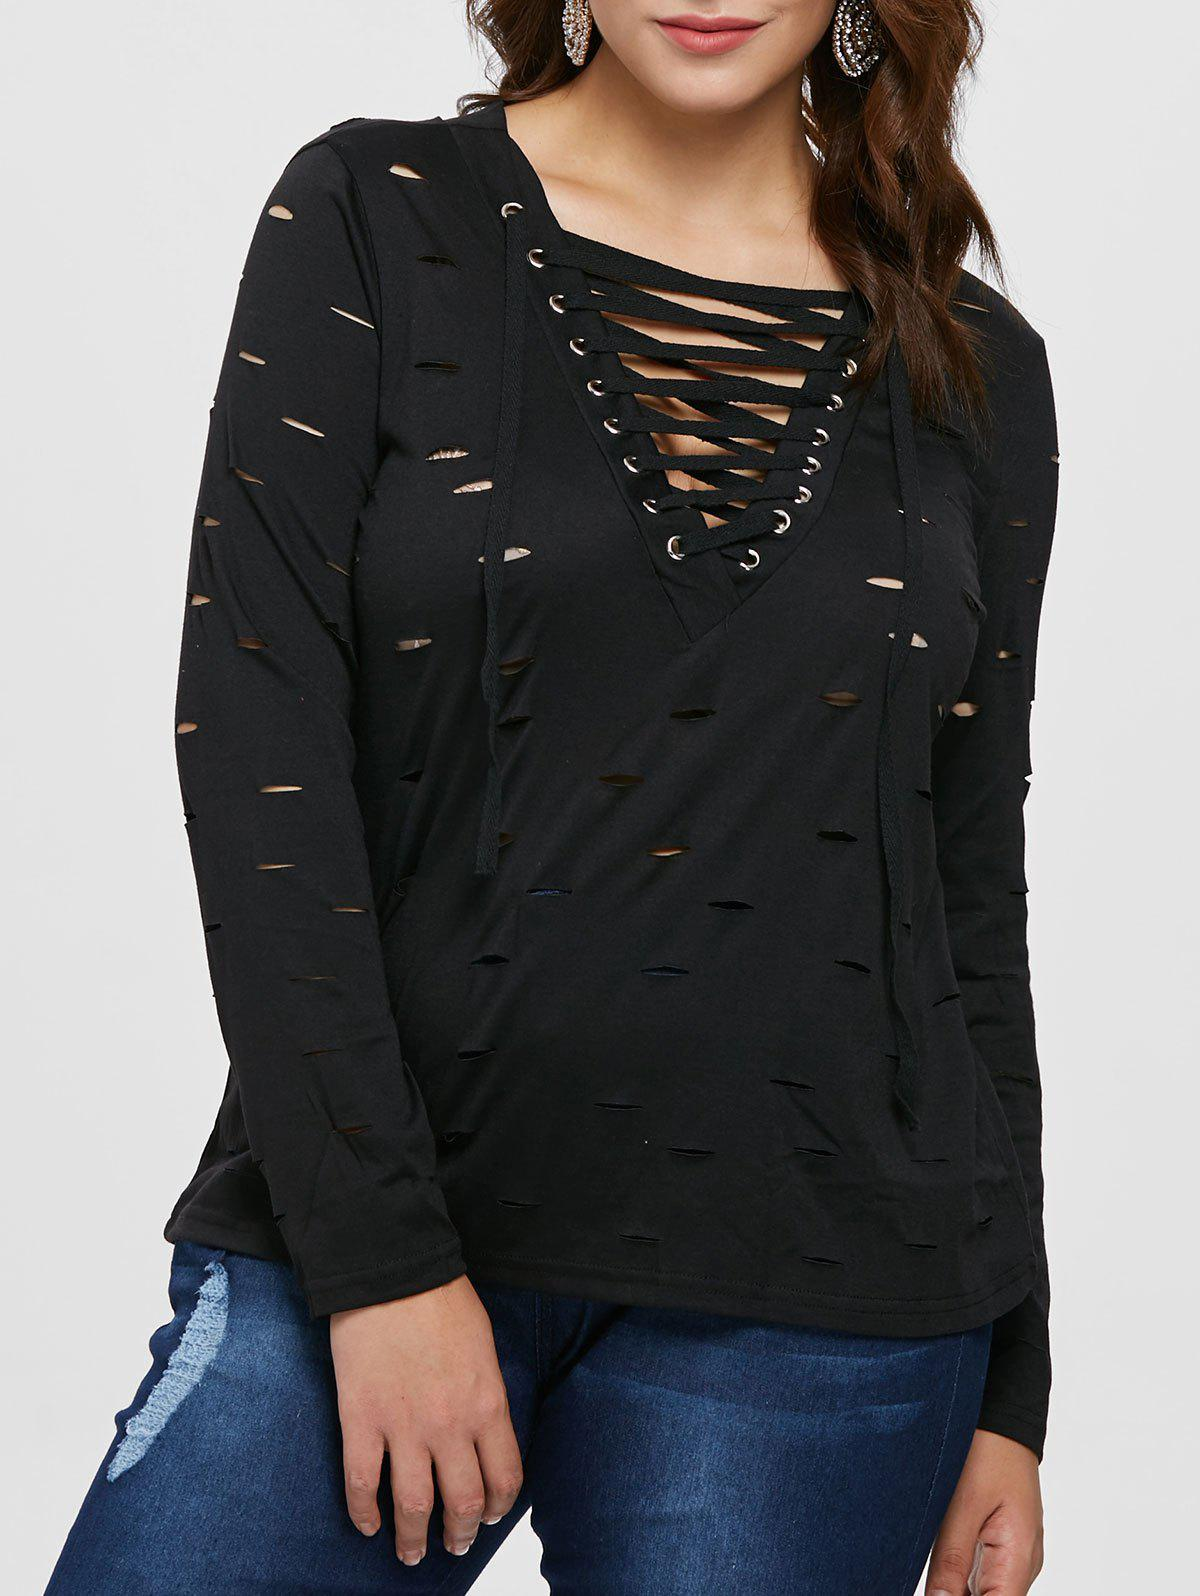 Fancy Ripped Plus Size Lace Up T-shirt